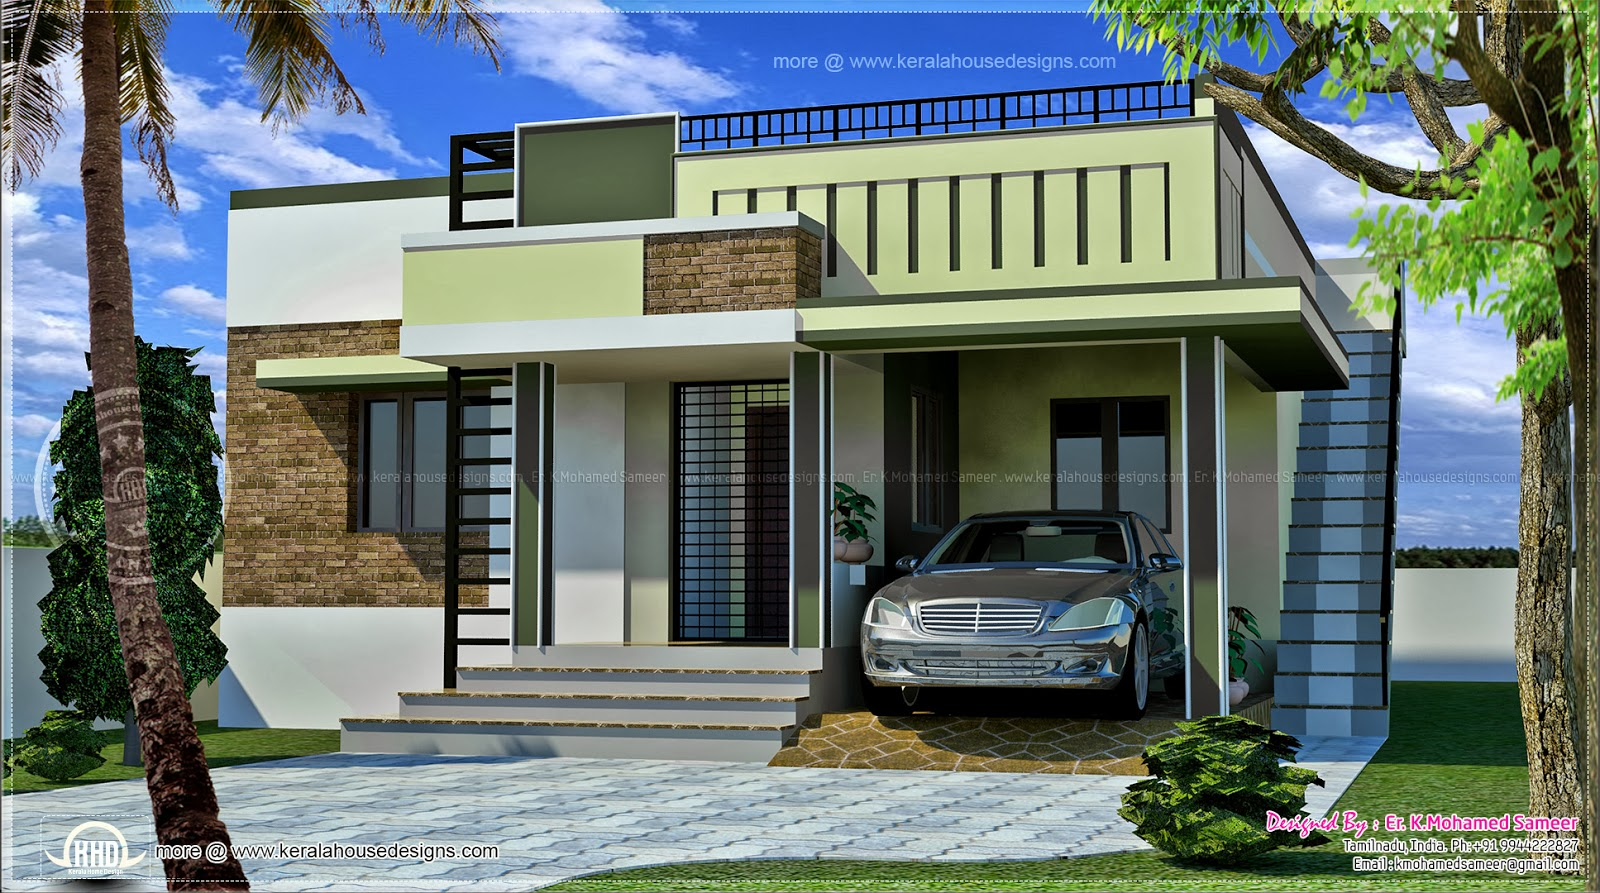 110 Square Meter Small Single Floor Home Kerala Home Design And Floor Plans